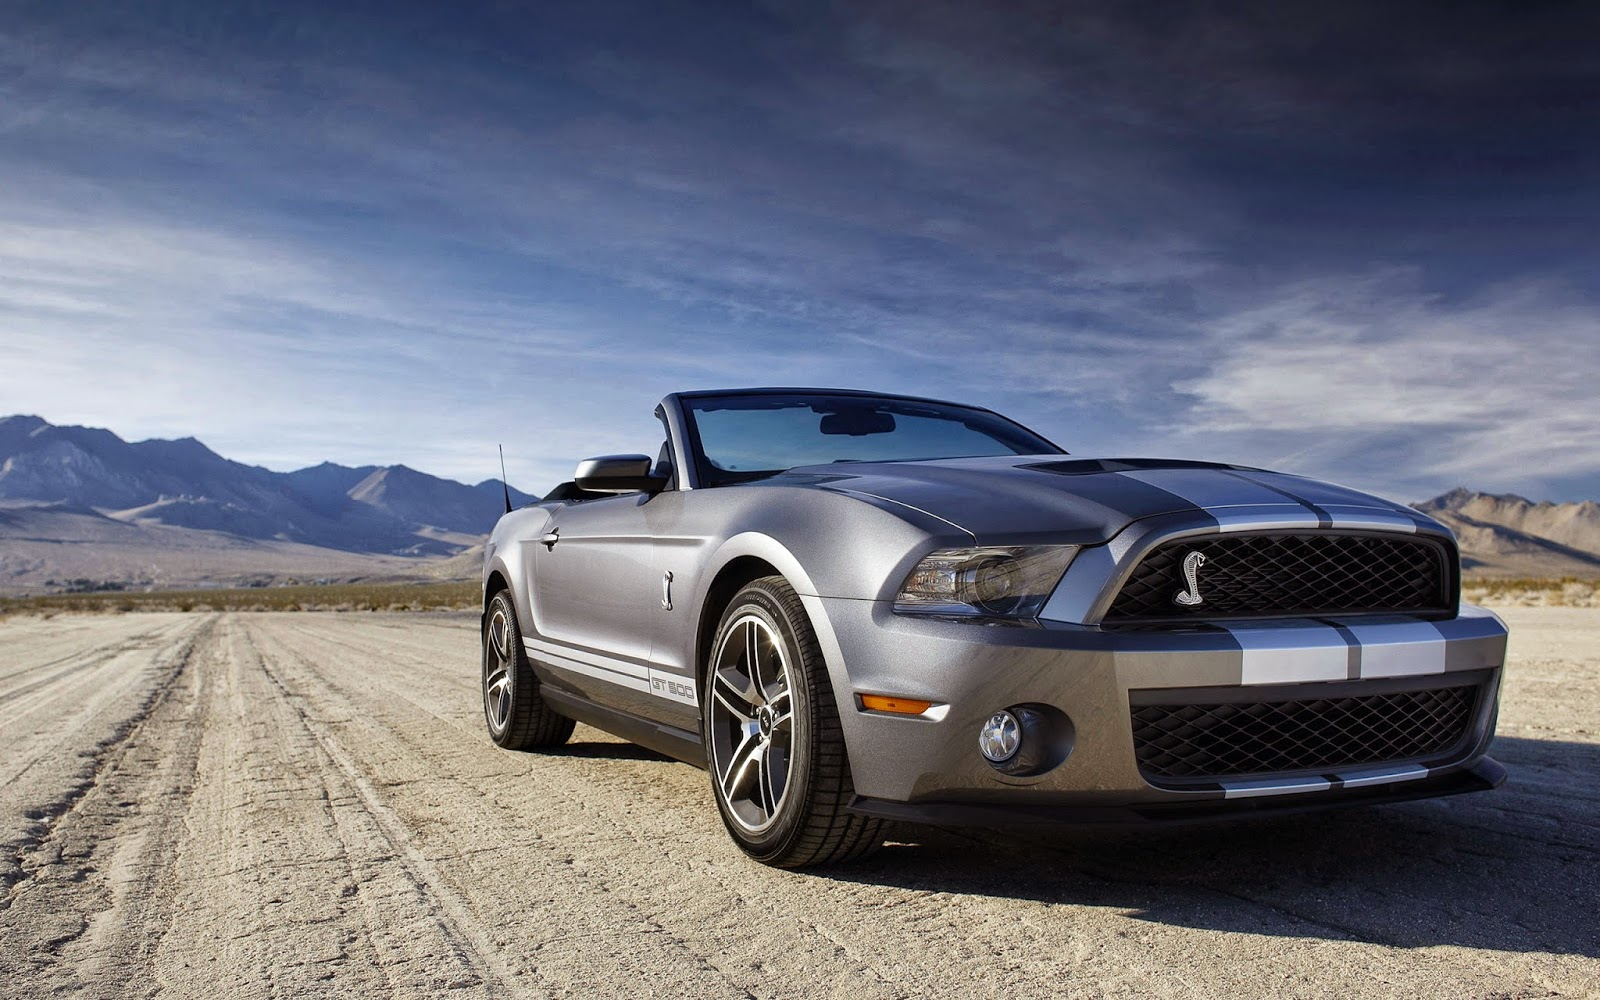 http://www.autocarsinfo.com/2014/08/ford-shelby-mustang-gt-500-free.html